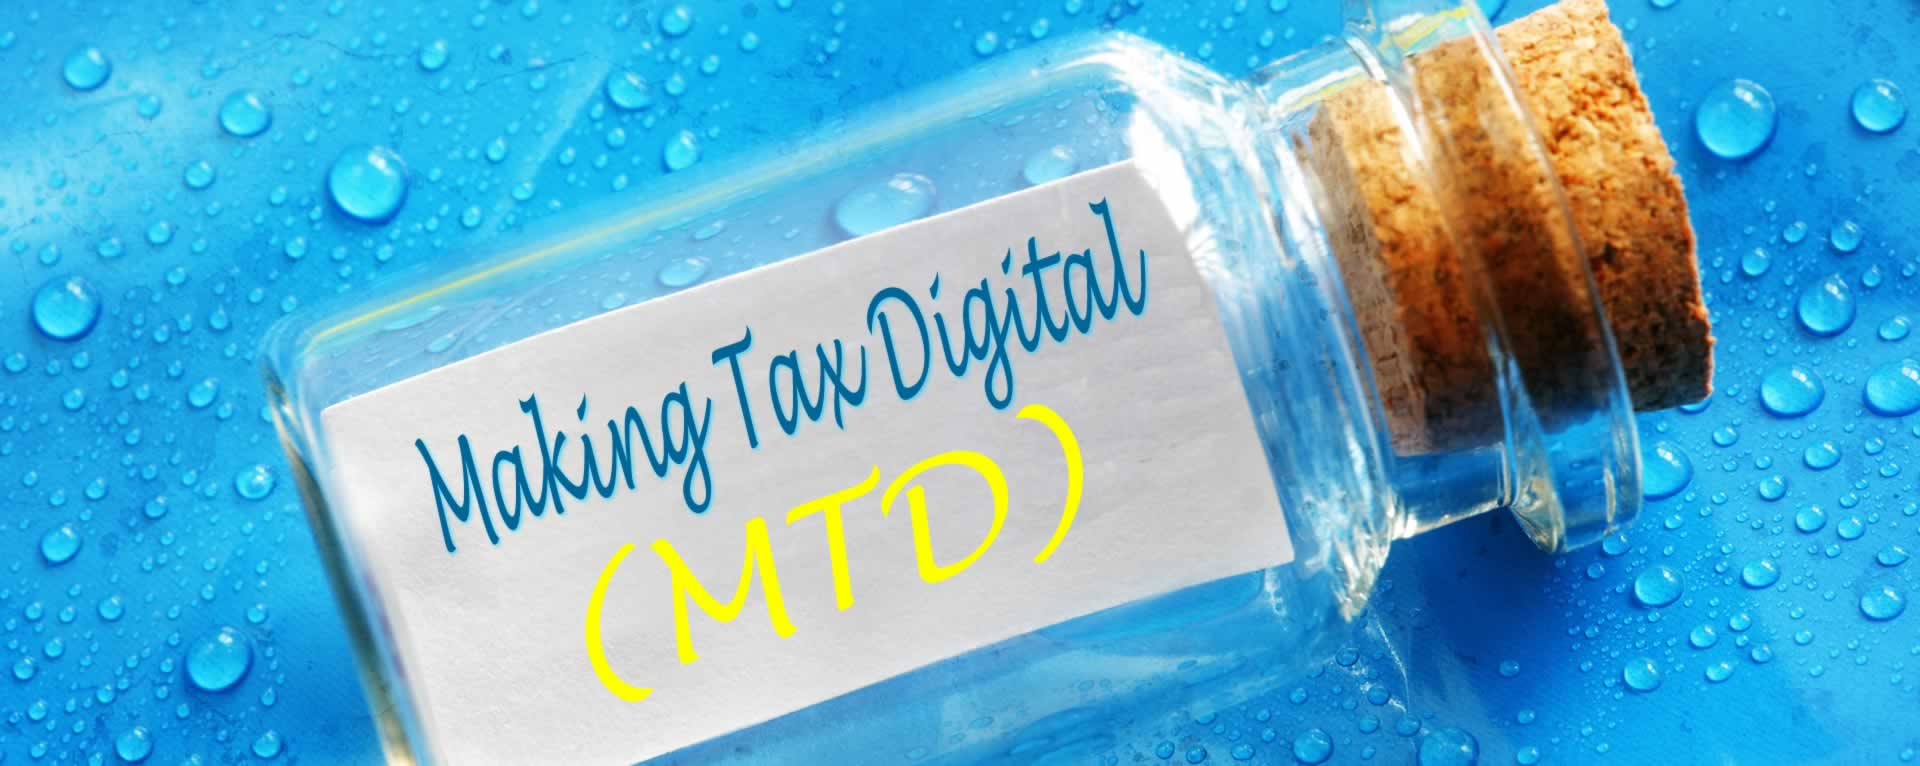 Image of Making Tax Digital message in a bottle